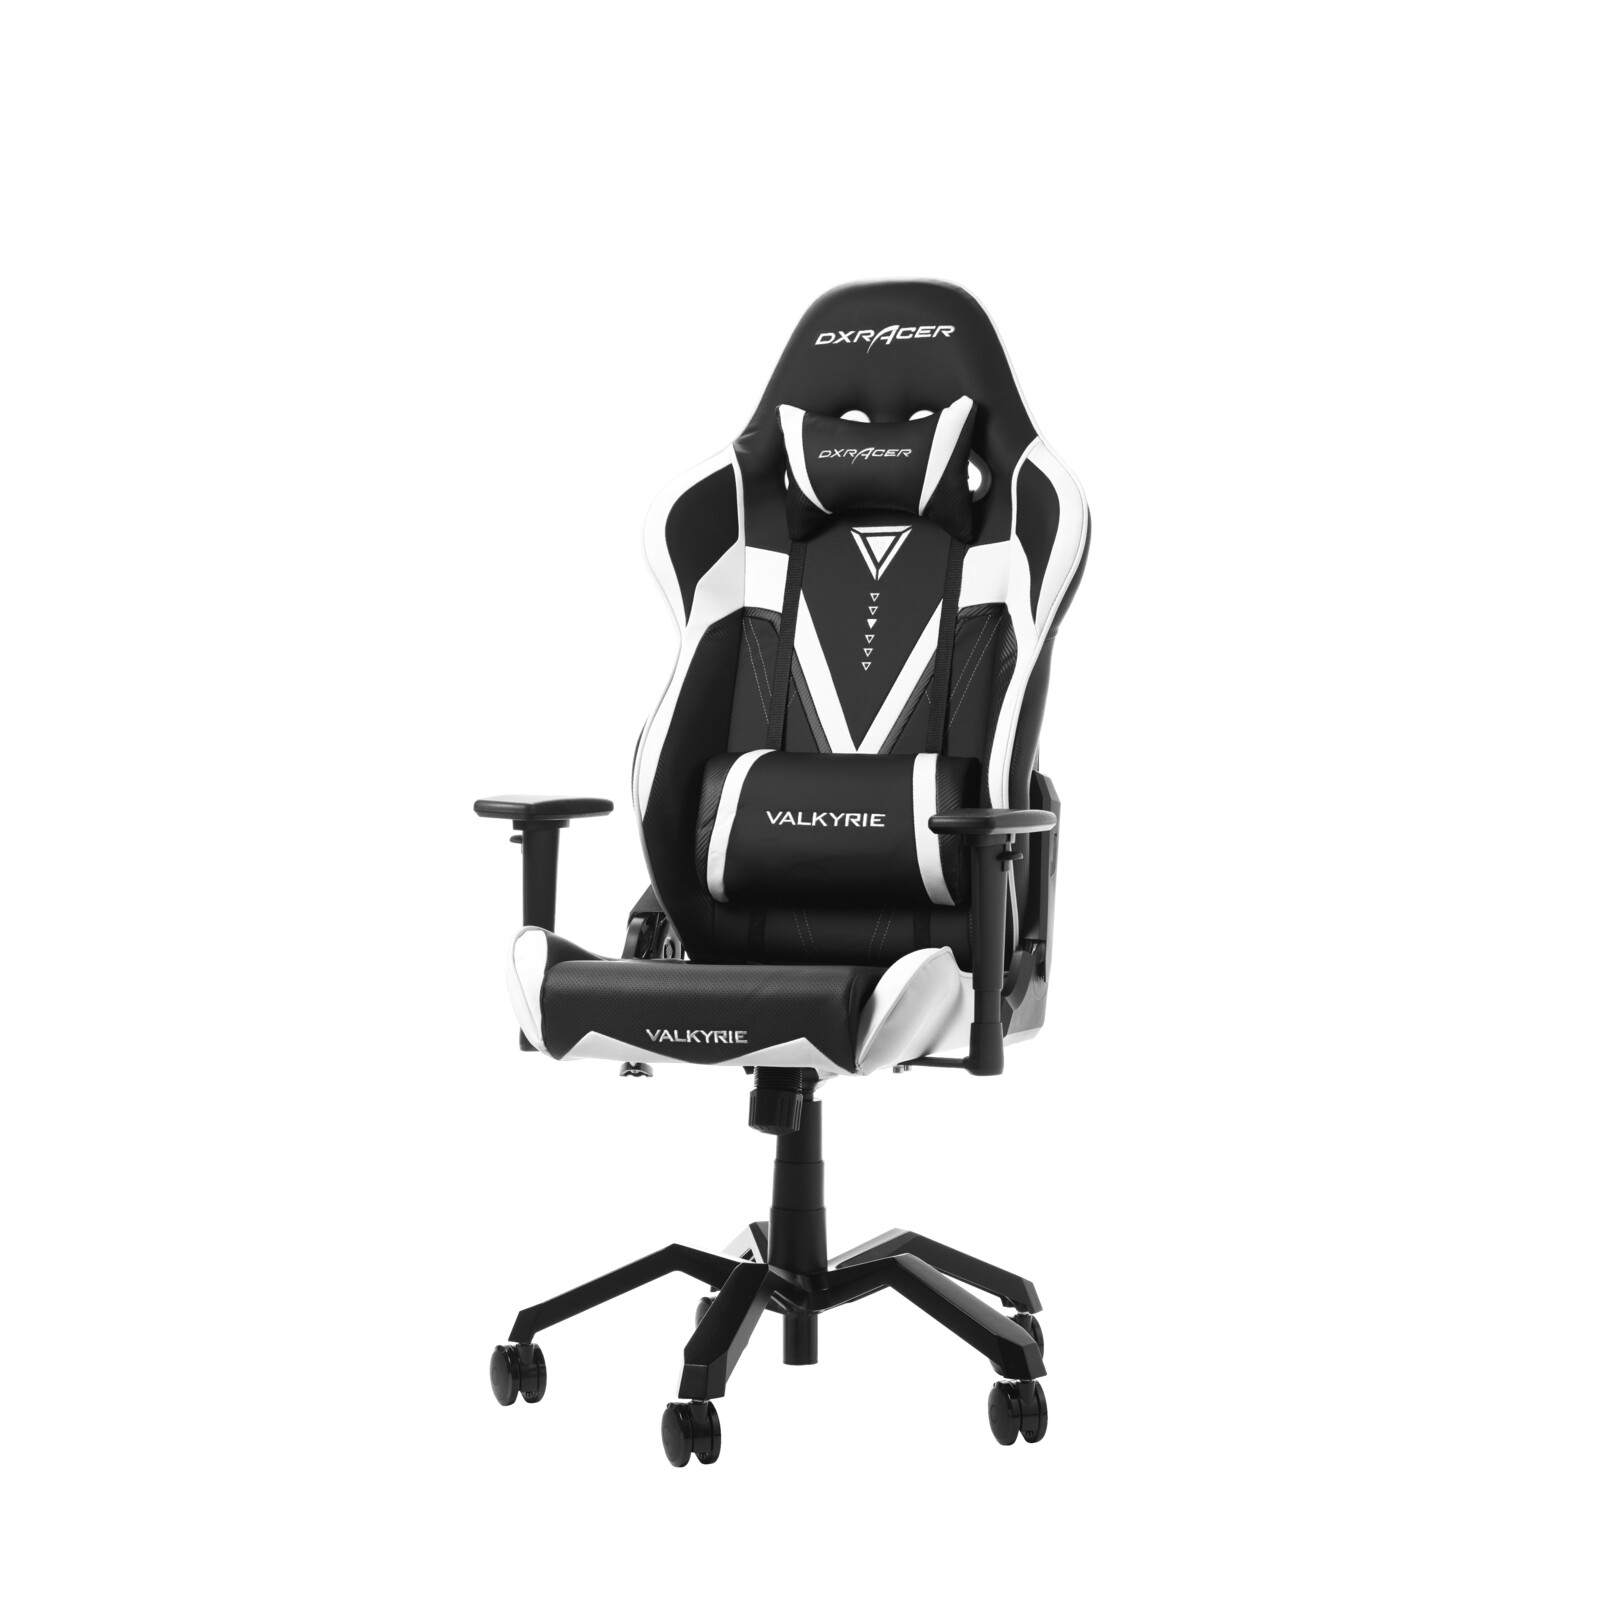 Gamer Sessel Media Markt Details Zu Dxracer Valkyrie V03 Gaming Chair Black White Gaming Stuhl Schwarz Weiß